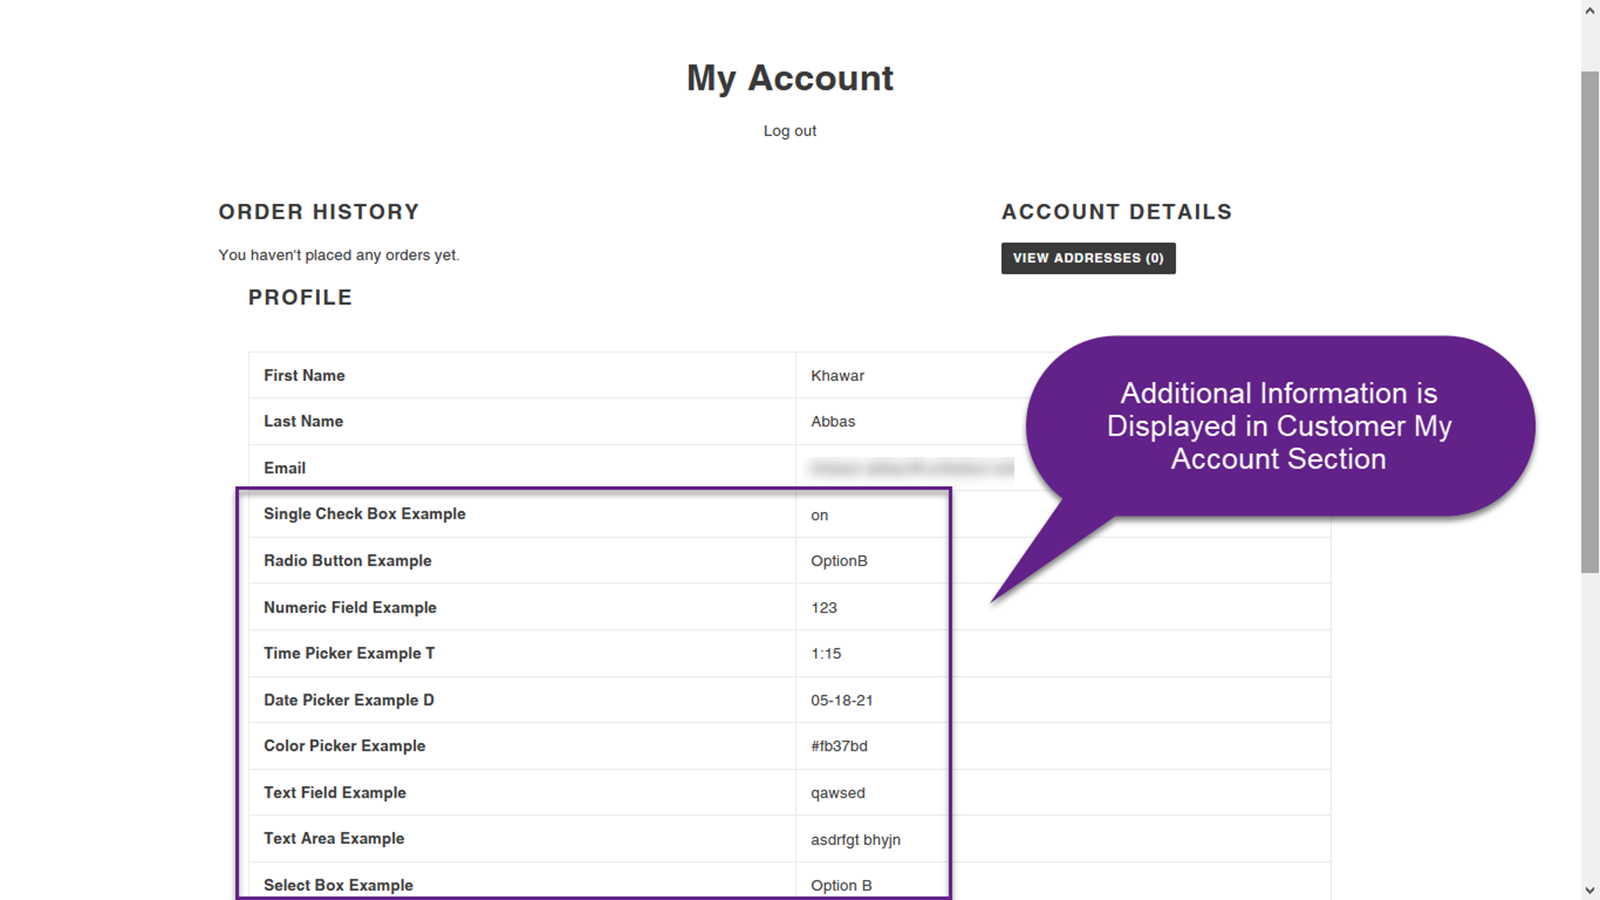 Additional Information is also Displayed in Customer Account Sec